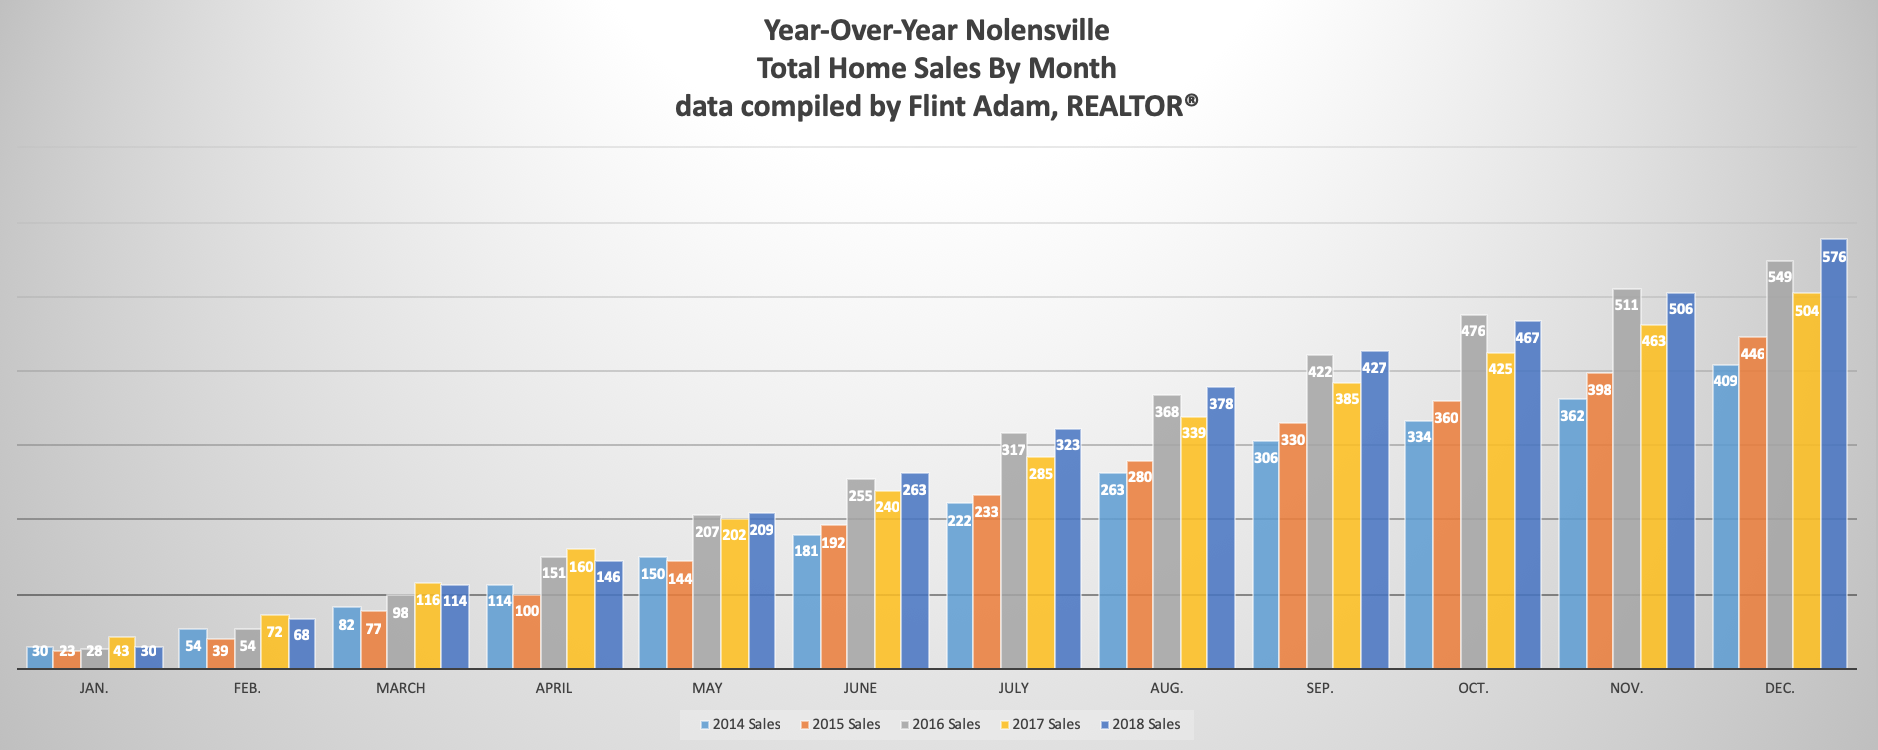 Year-Over-Year Nolensville Total Home Sales by Month 2014 - 2018